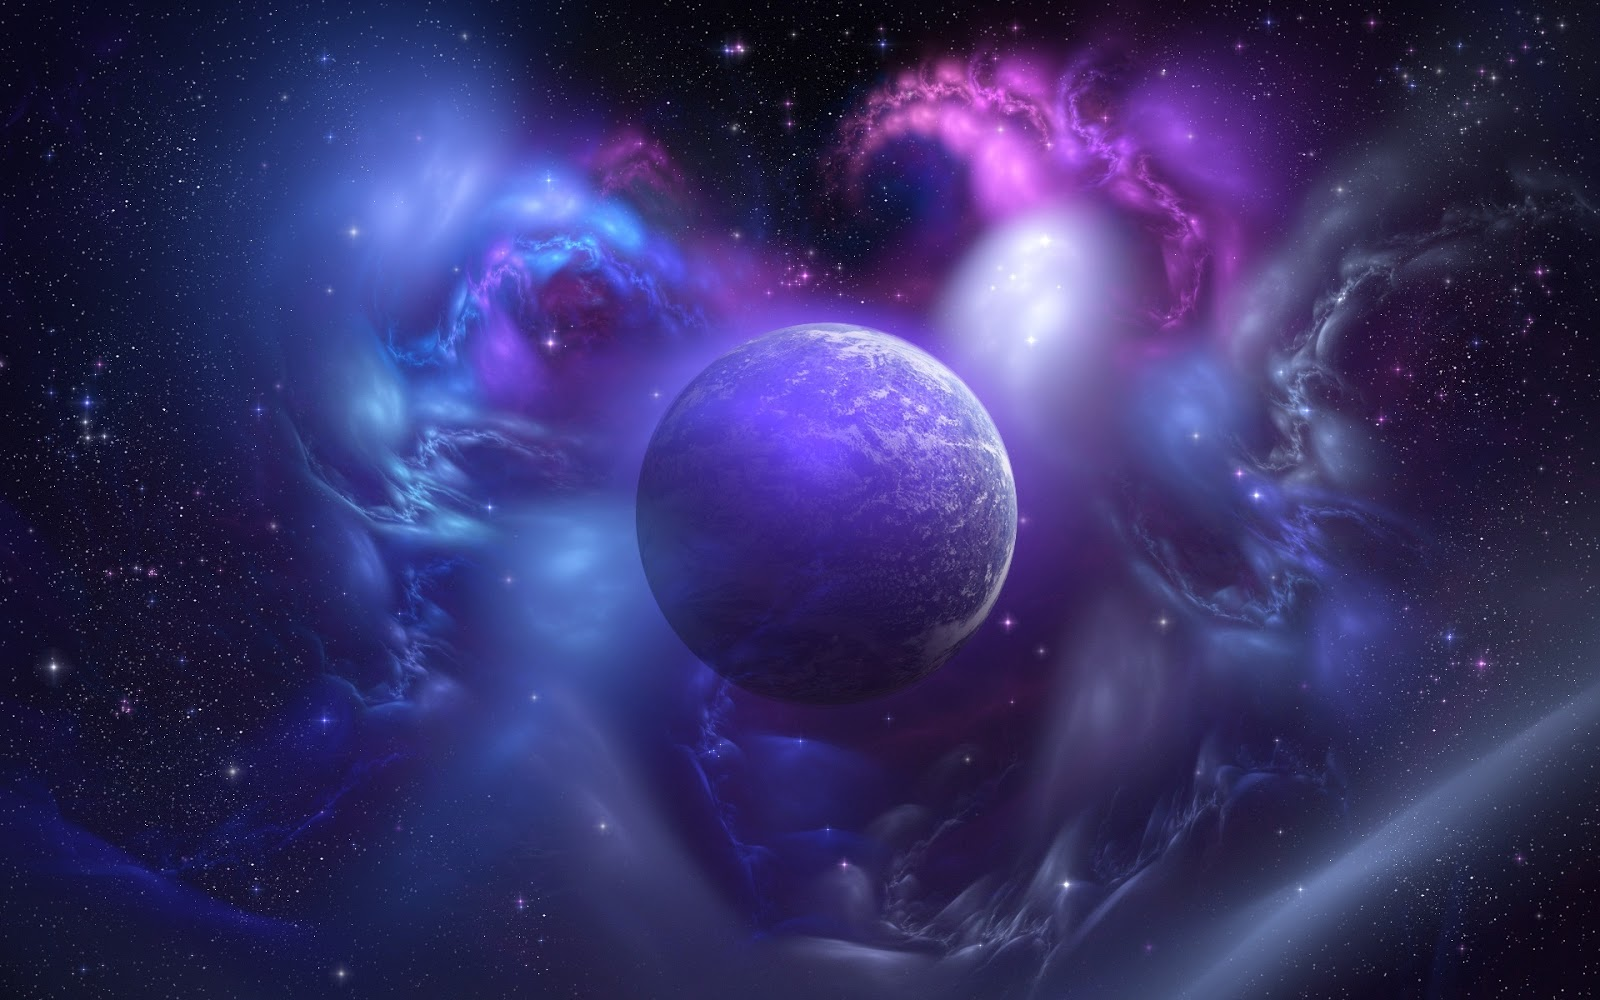 4k Outer Space Wallpaper Desktop Space Wallpaper